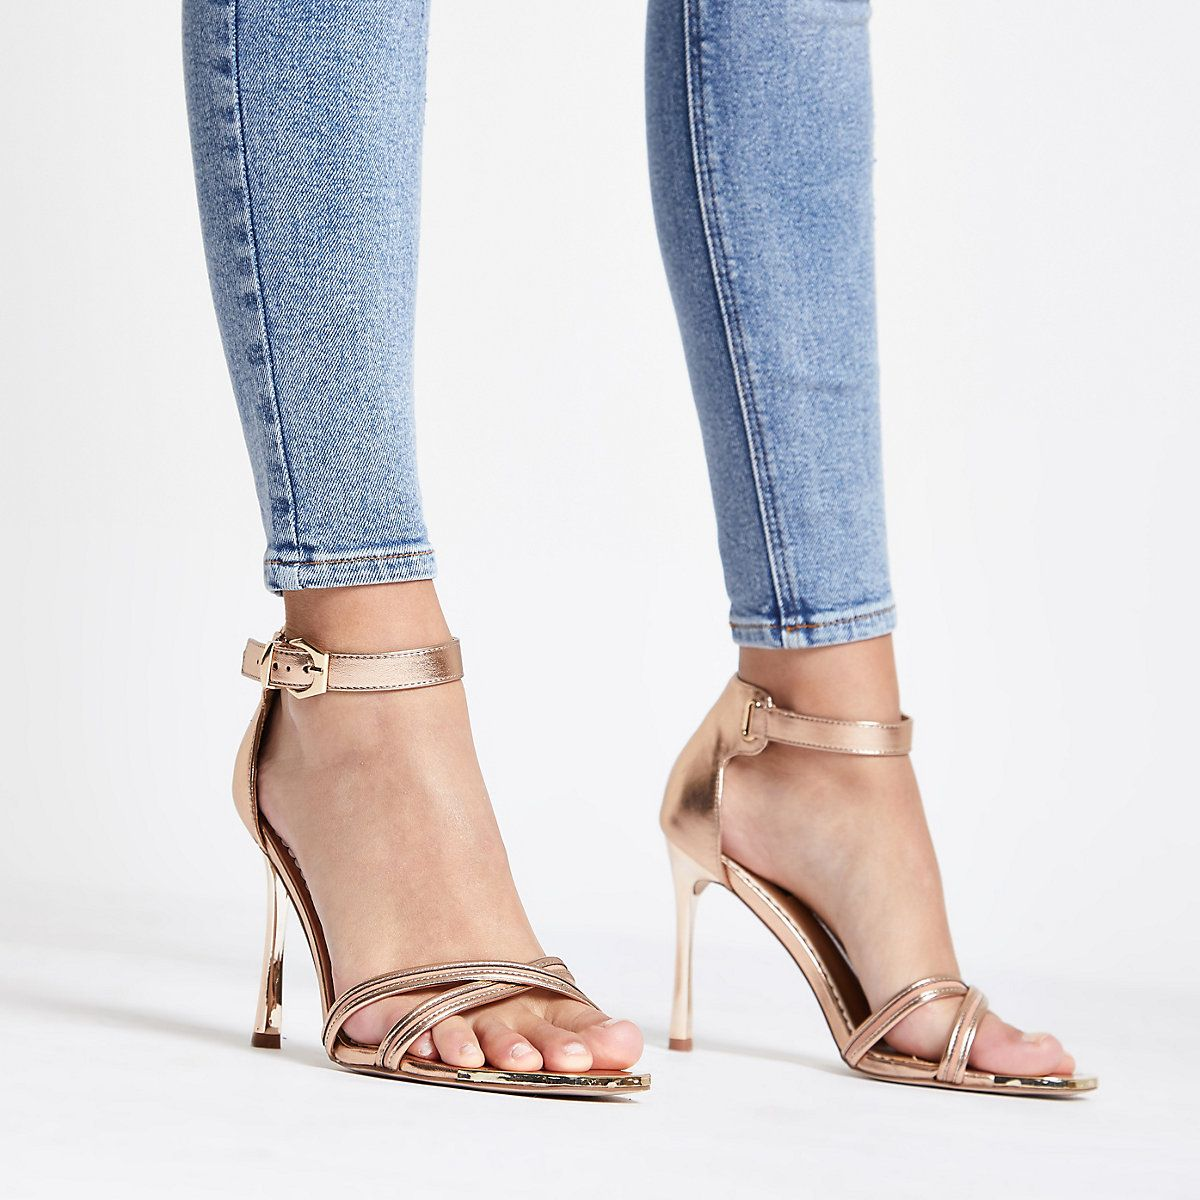 550e3db61fd6 Rose gold wide fit barely there sandals - Sandals - Shoes   Boots - women